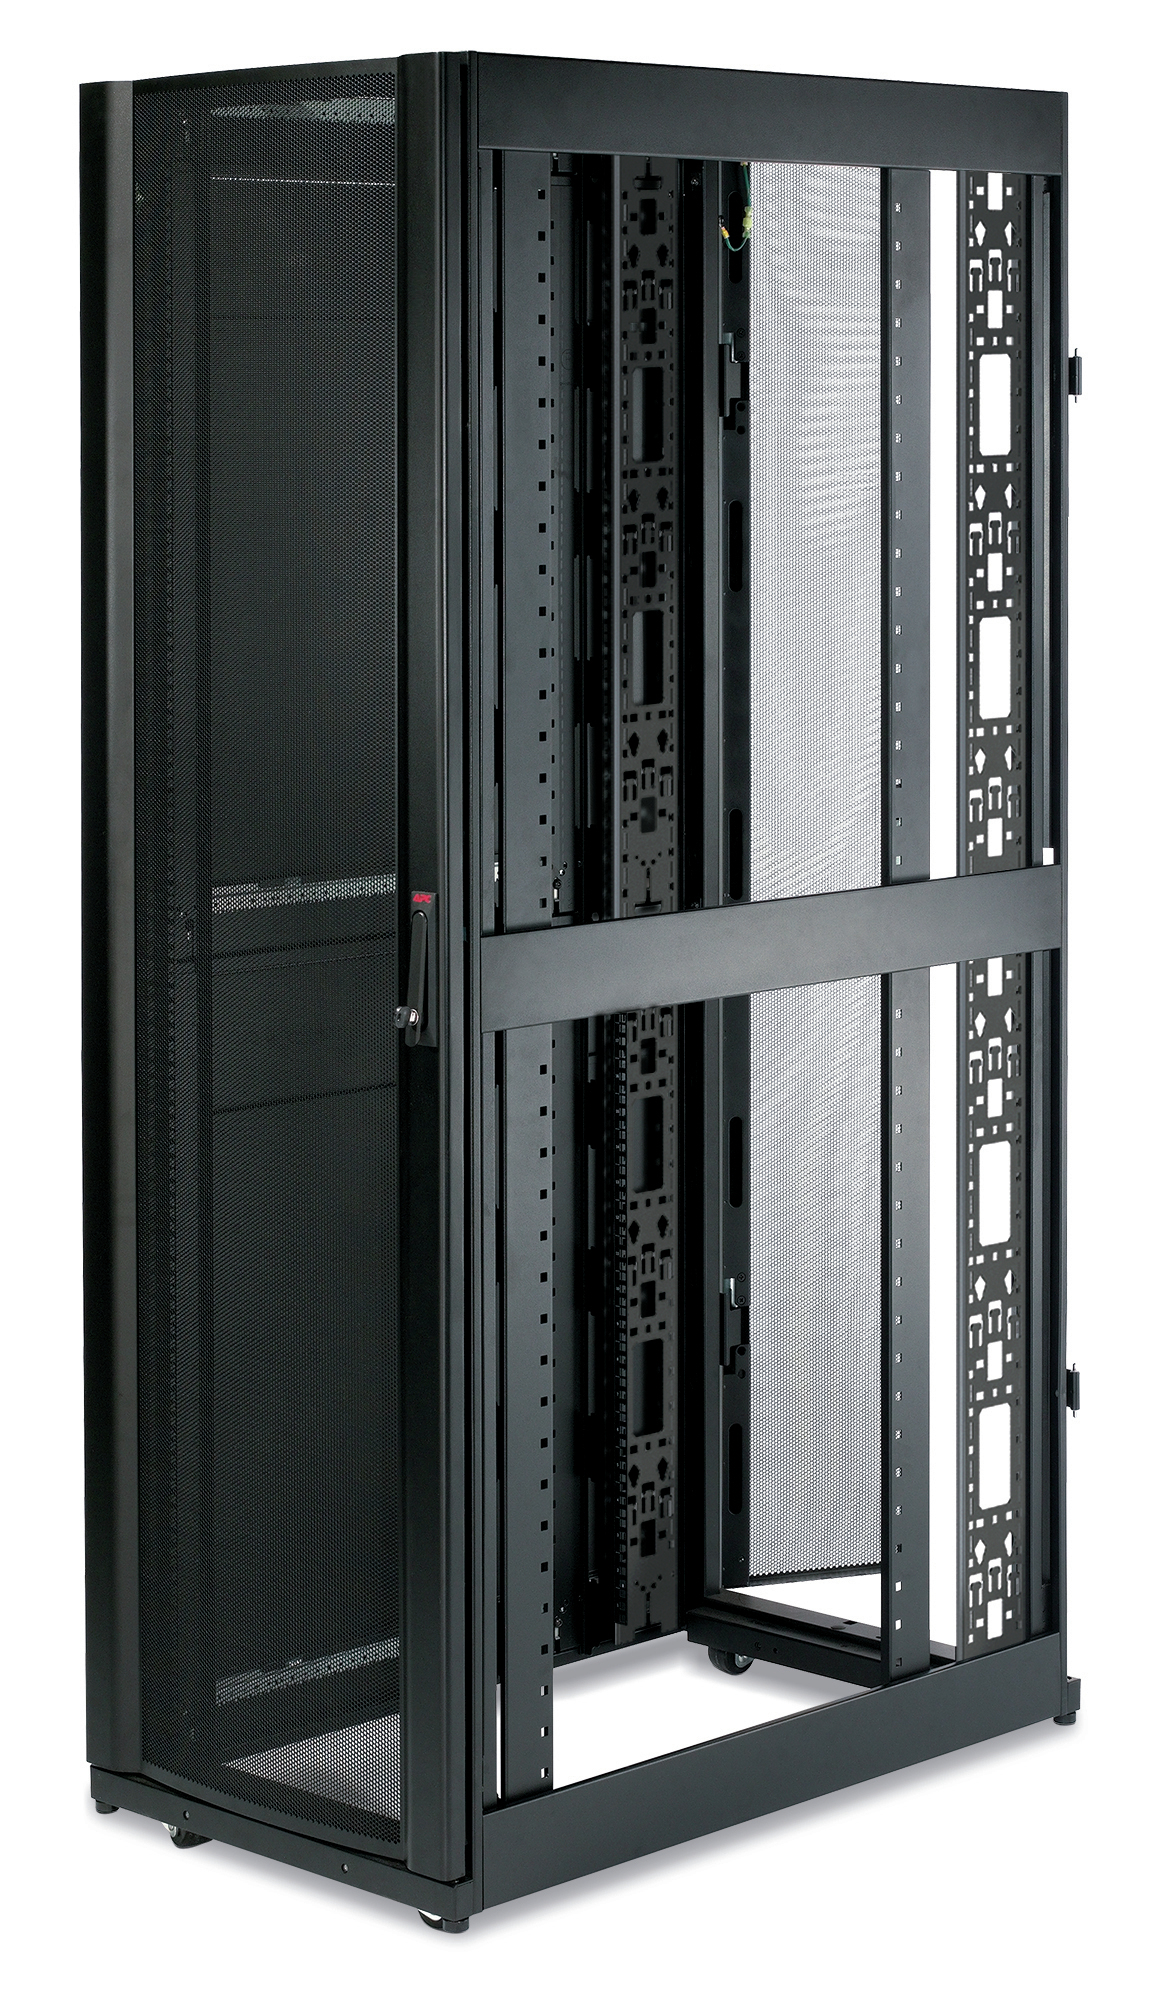 APC NETSHELTER SX 42U 600MM WIDE X 1070MM DEEP ENCLOSURE WITH SIDES BLACK RACK